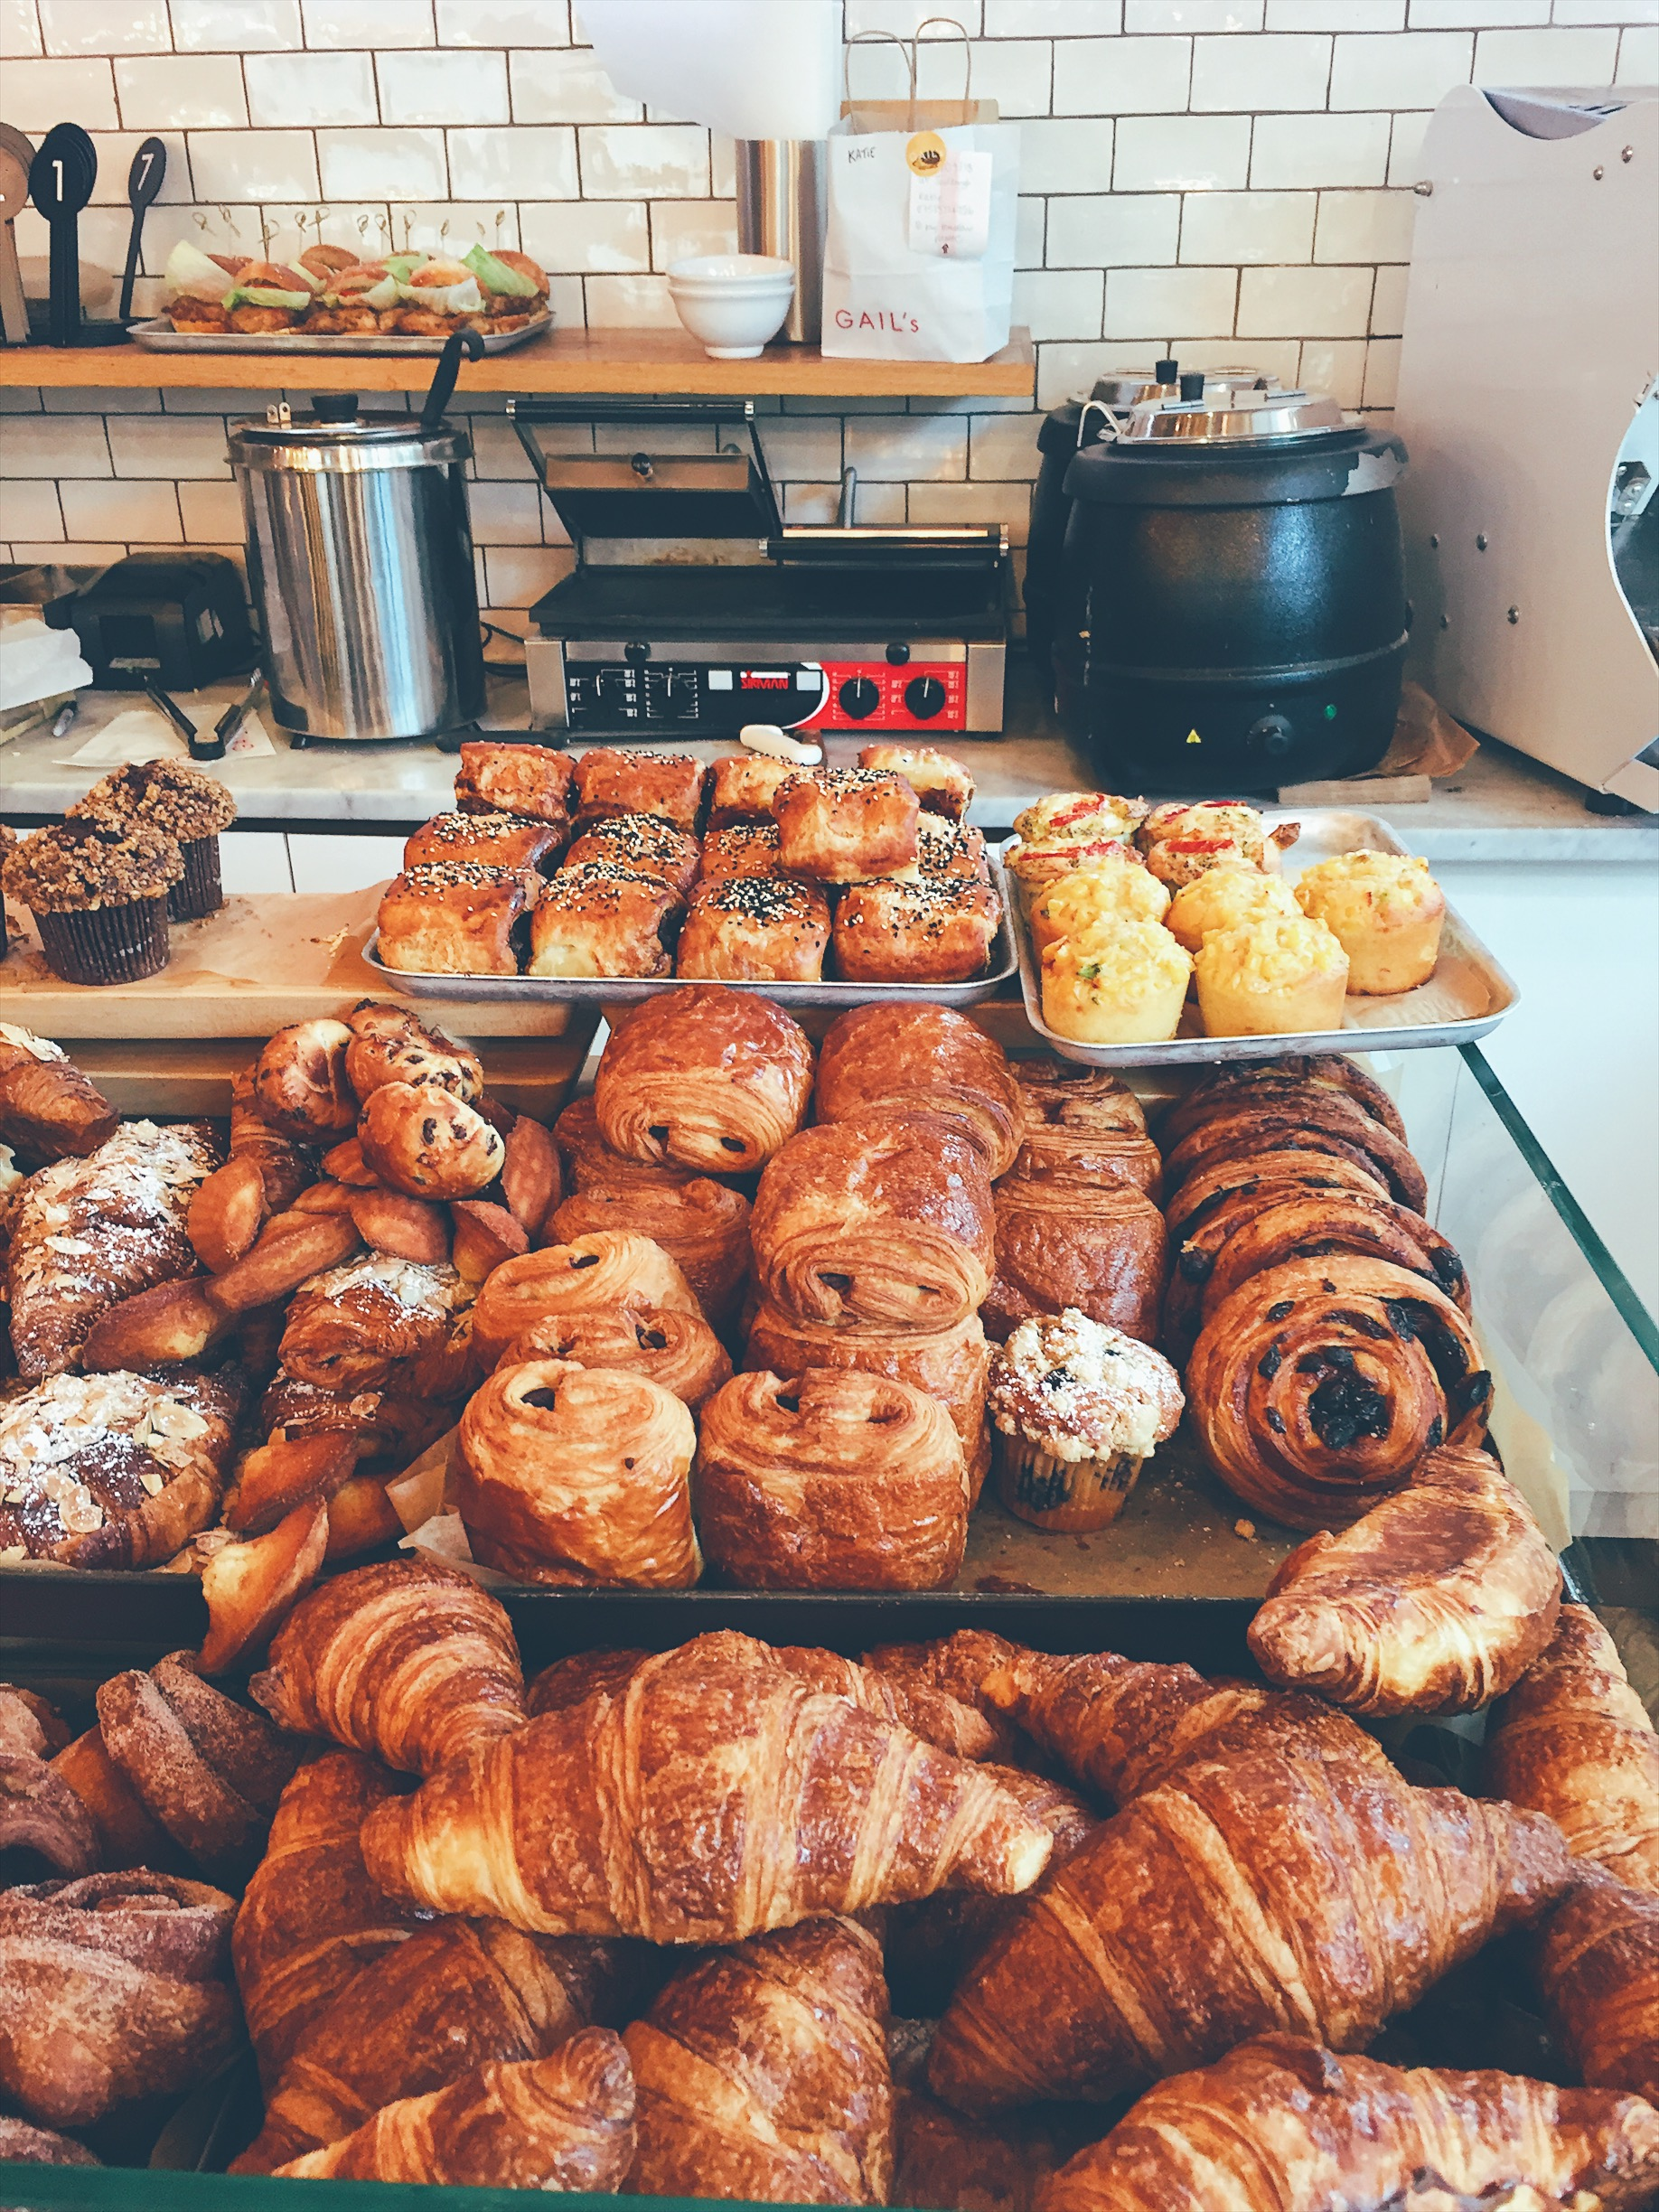 Croissants and pastries at the local bakery